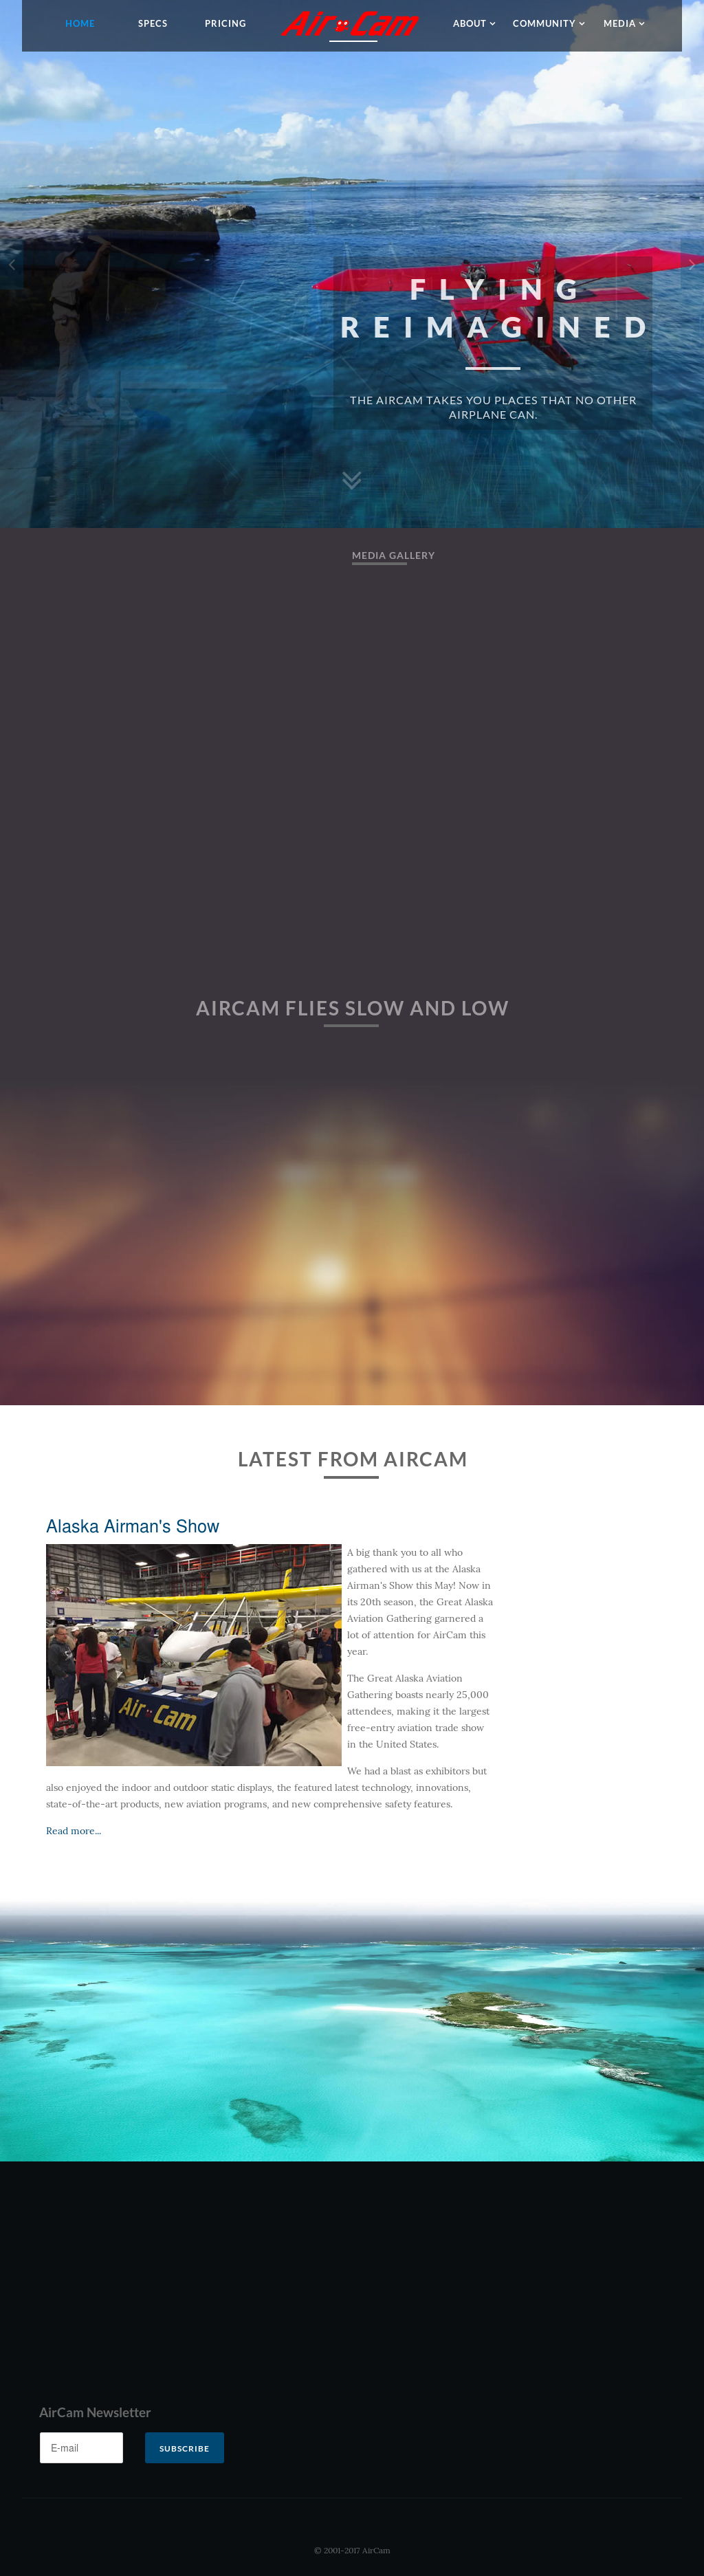 Aircam Competitors, Revenue and Employees - Owler Company Profile